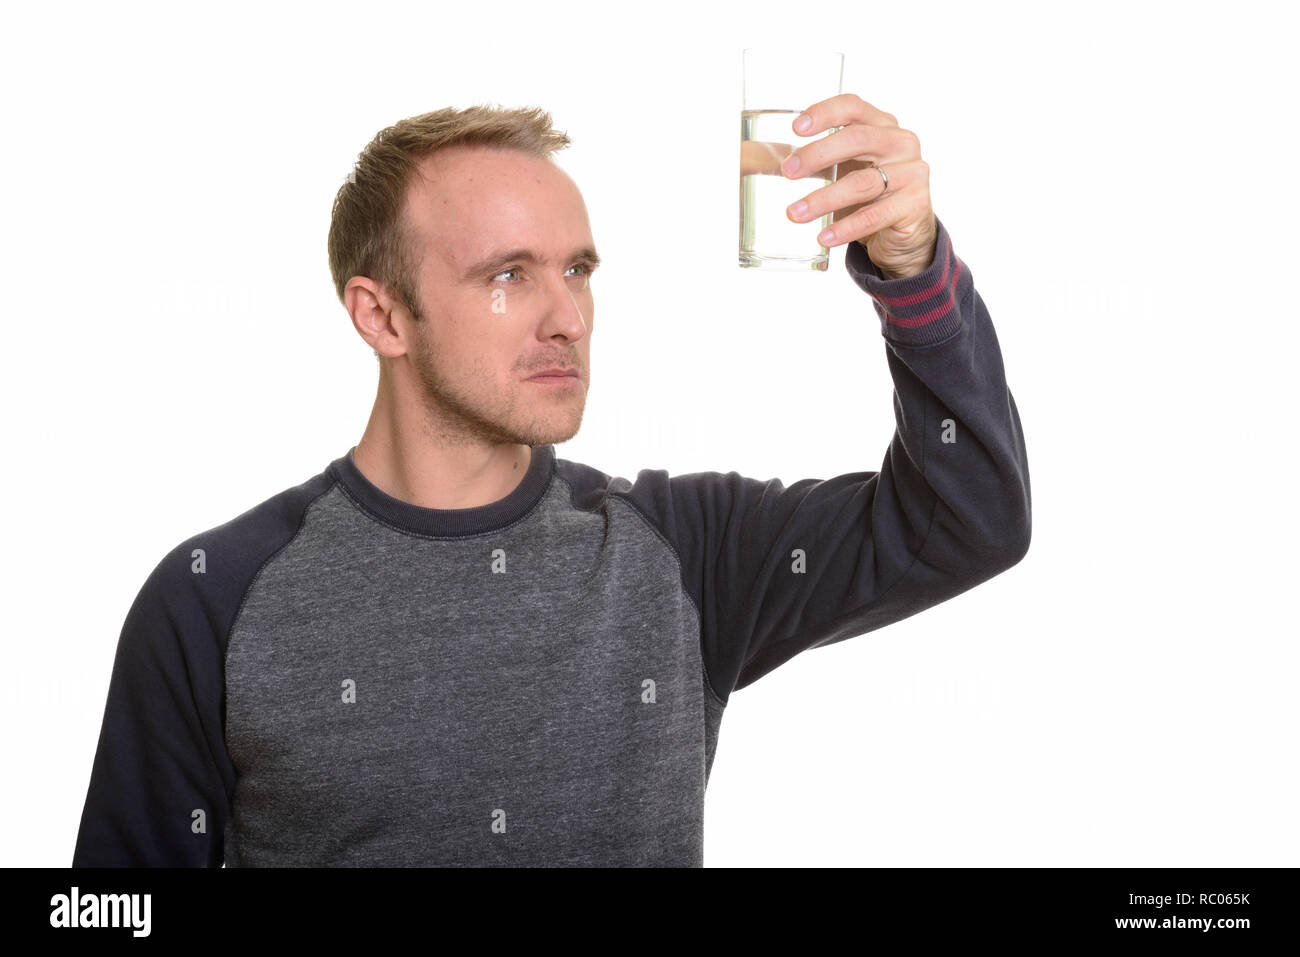 Handsome Caucasian man observing glass of water while thinking - Stock Image